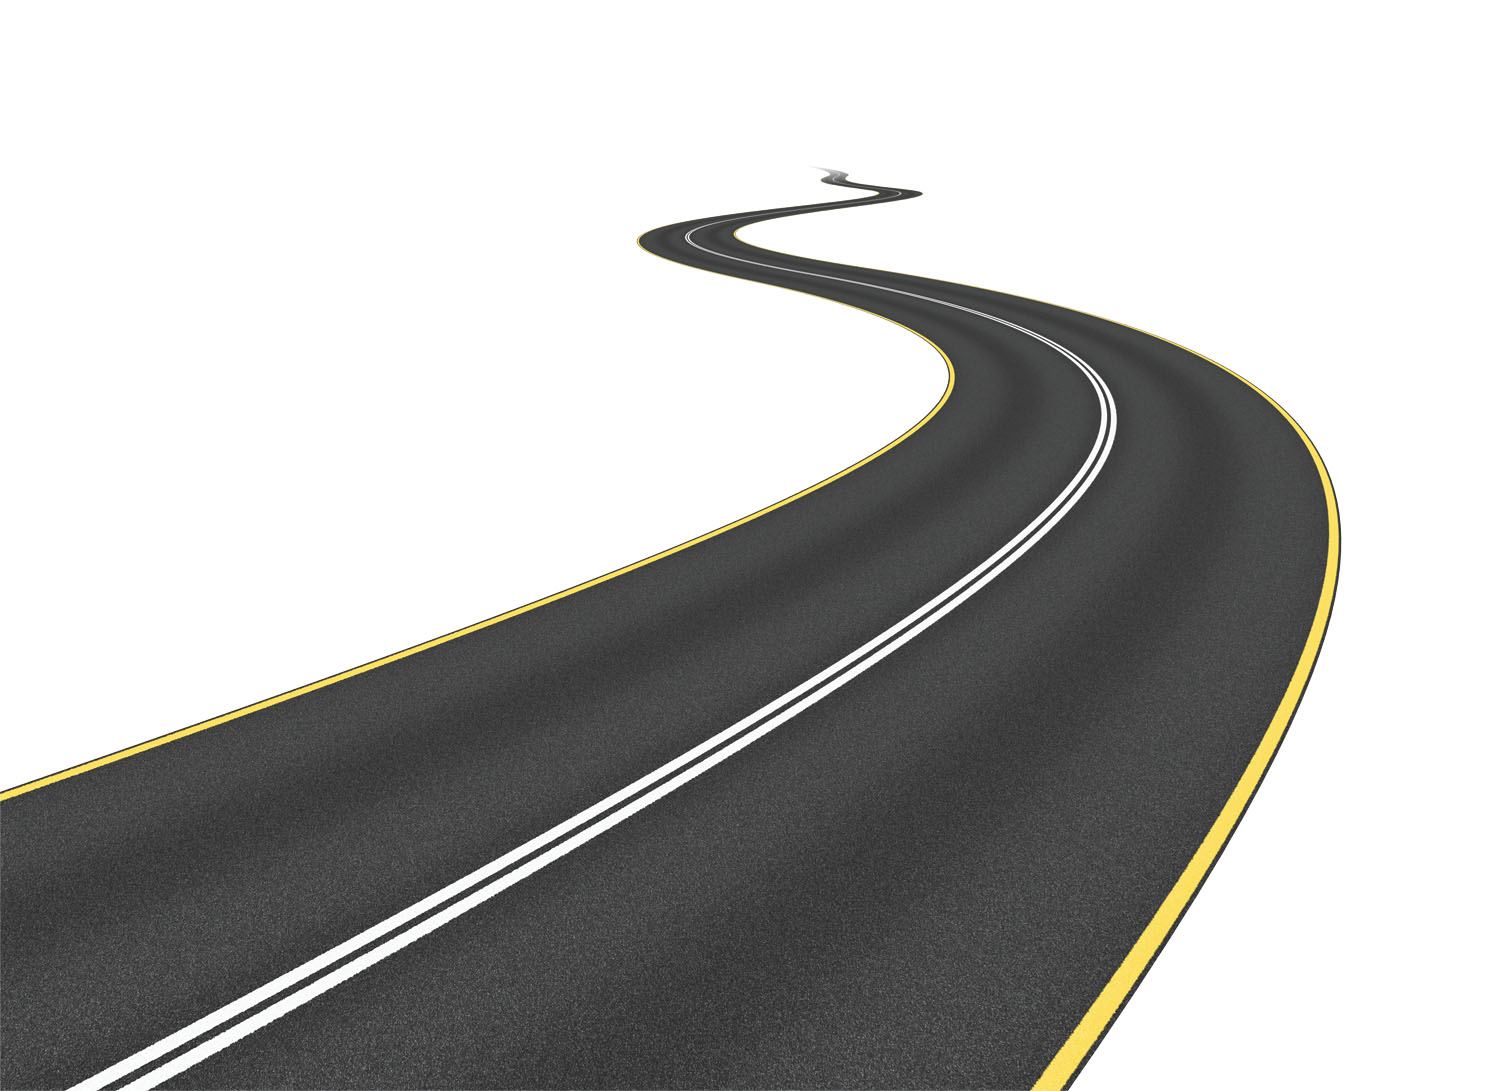 Road clipart. Long curvy  graphic black and white download